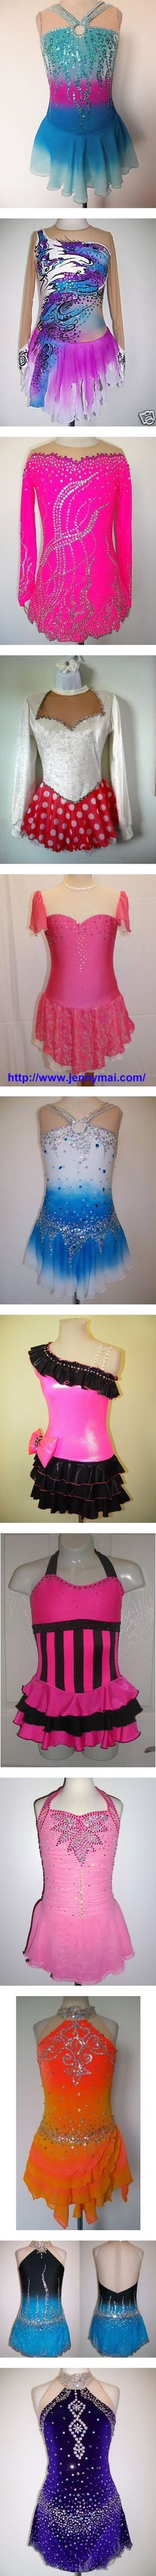 """Skating dresses WMLEBP (FanFic)"" by chelseacov-xx ❤ liked on Polyvore"